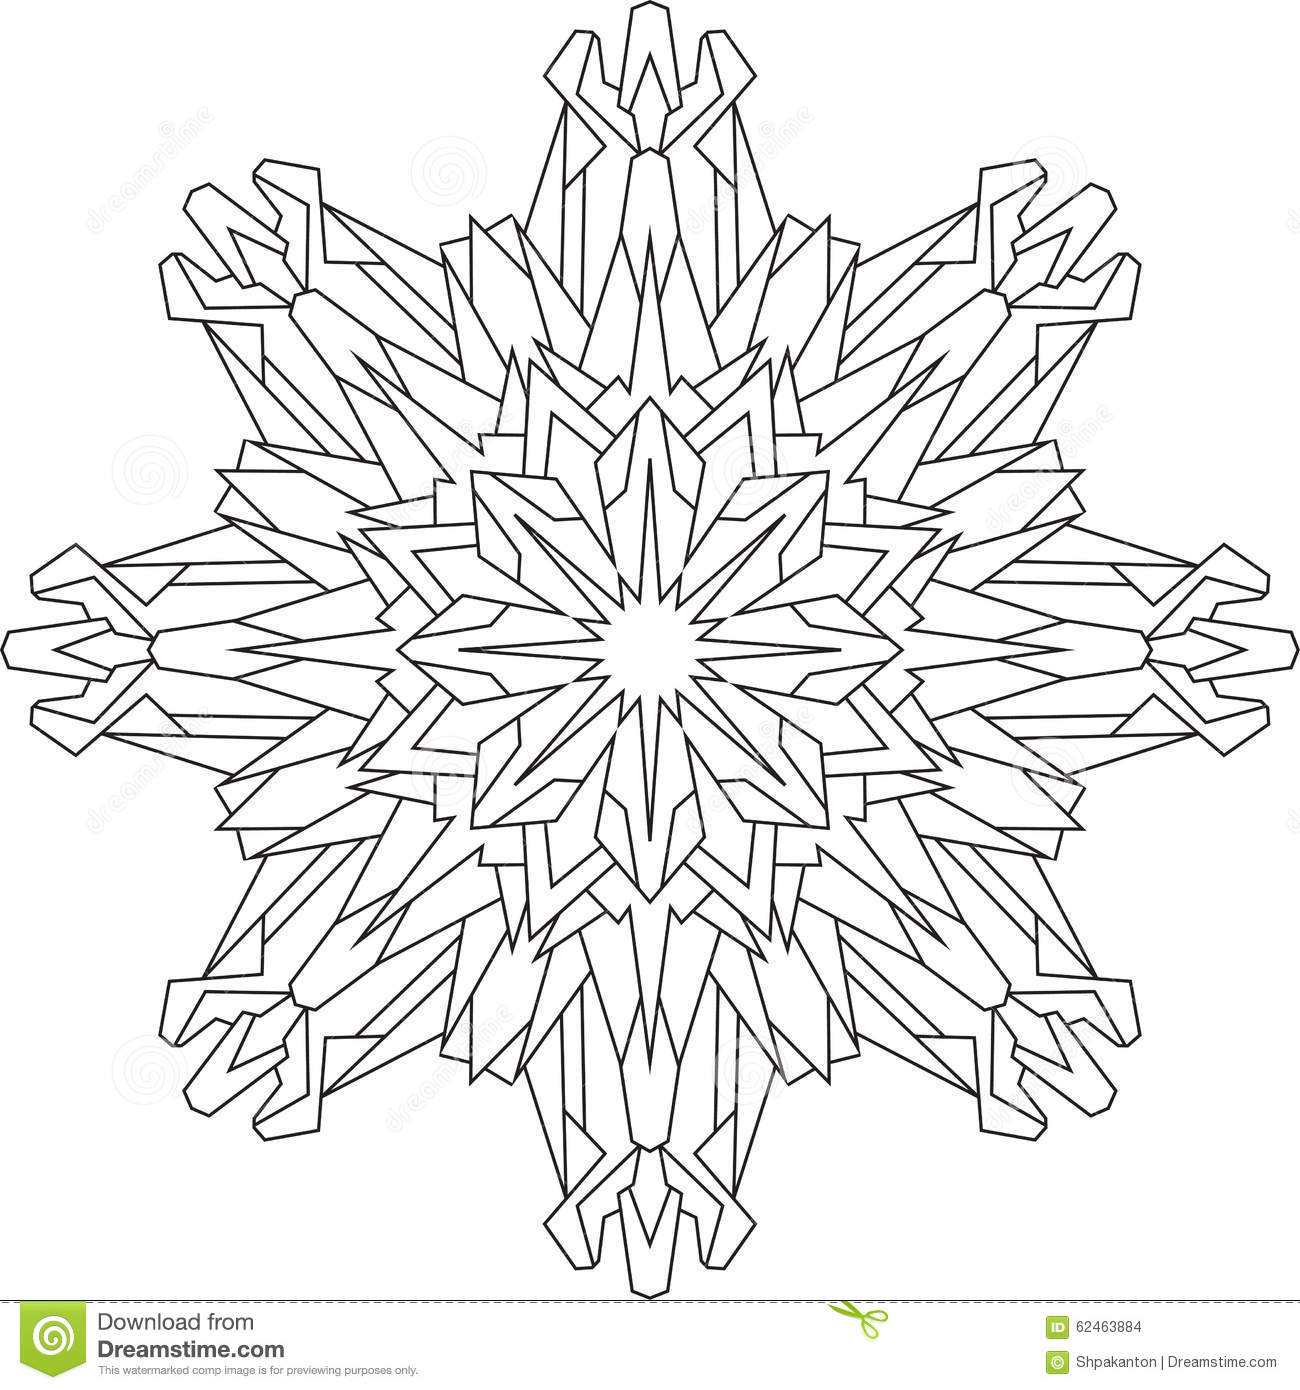 Coloring book snowflake - Outlines Of Snowflake In Mono Line Style For Coloring Coloring